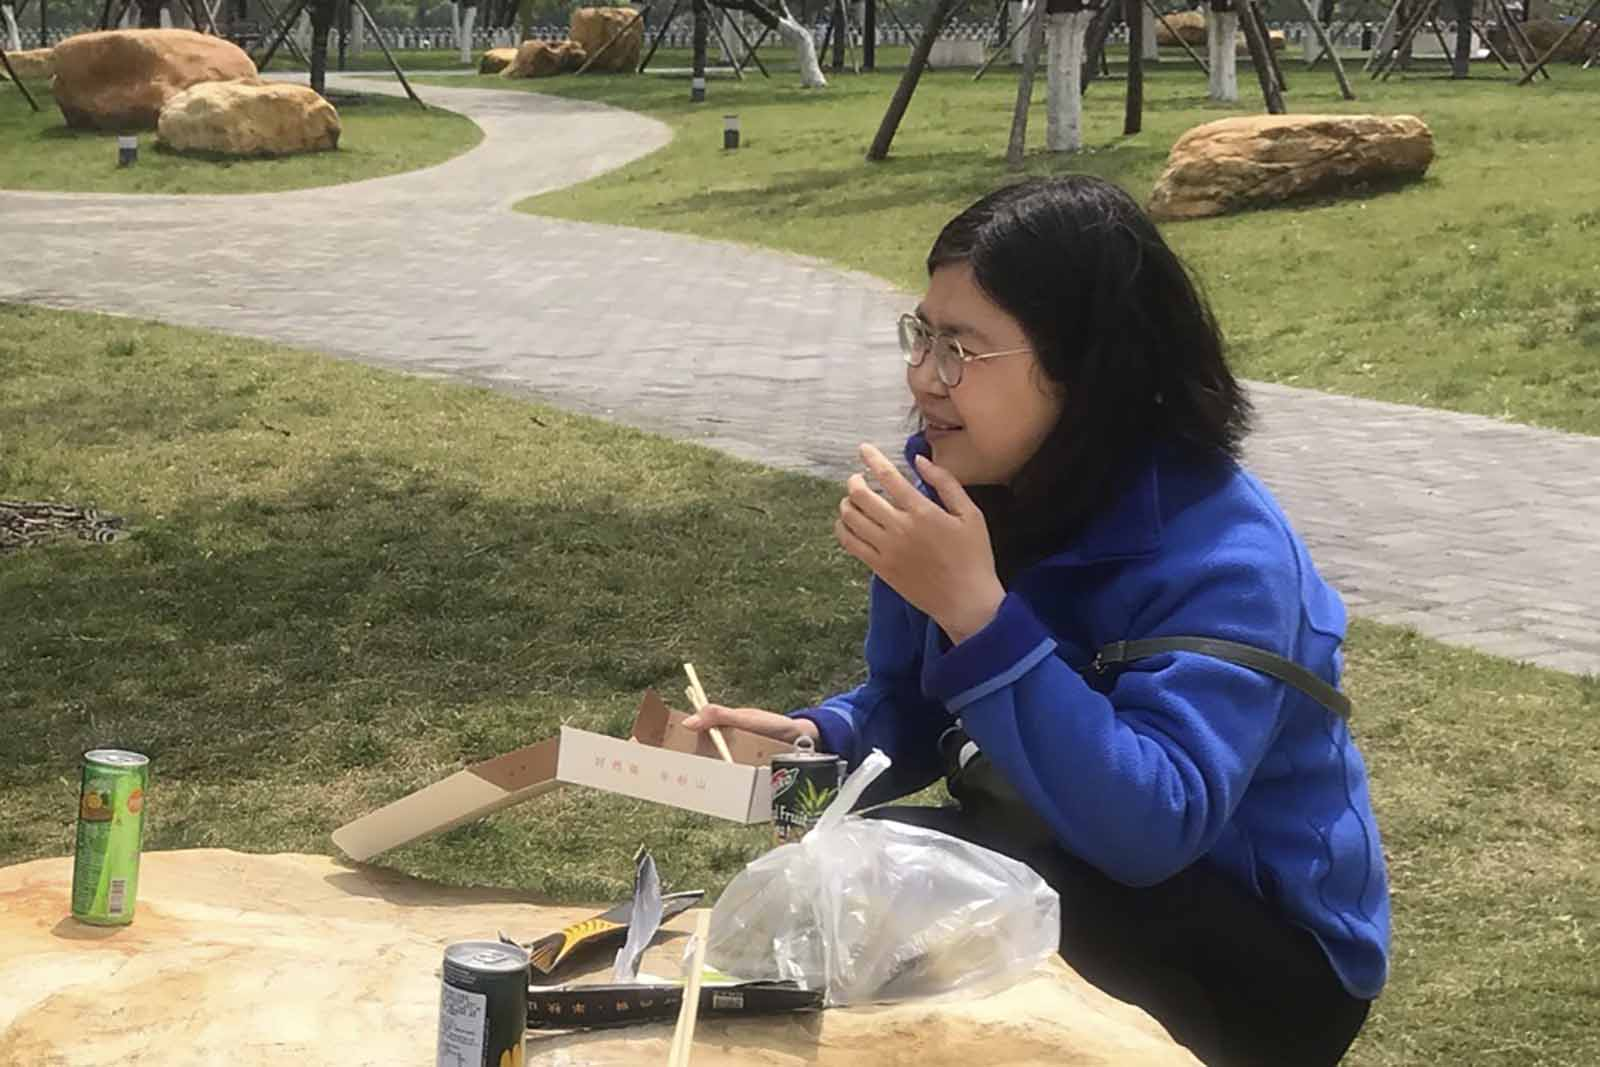 In this photo taken April 14, Zhang Zhan eats a meal at a park during a visit to Wuhan in China's Hubei province.